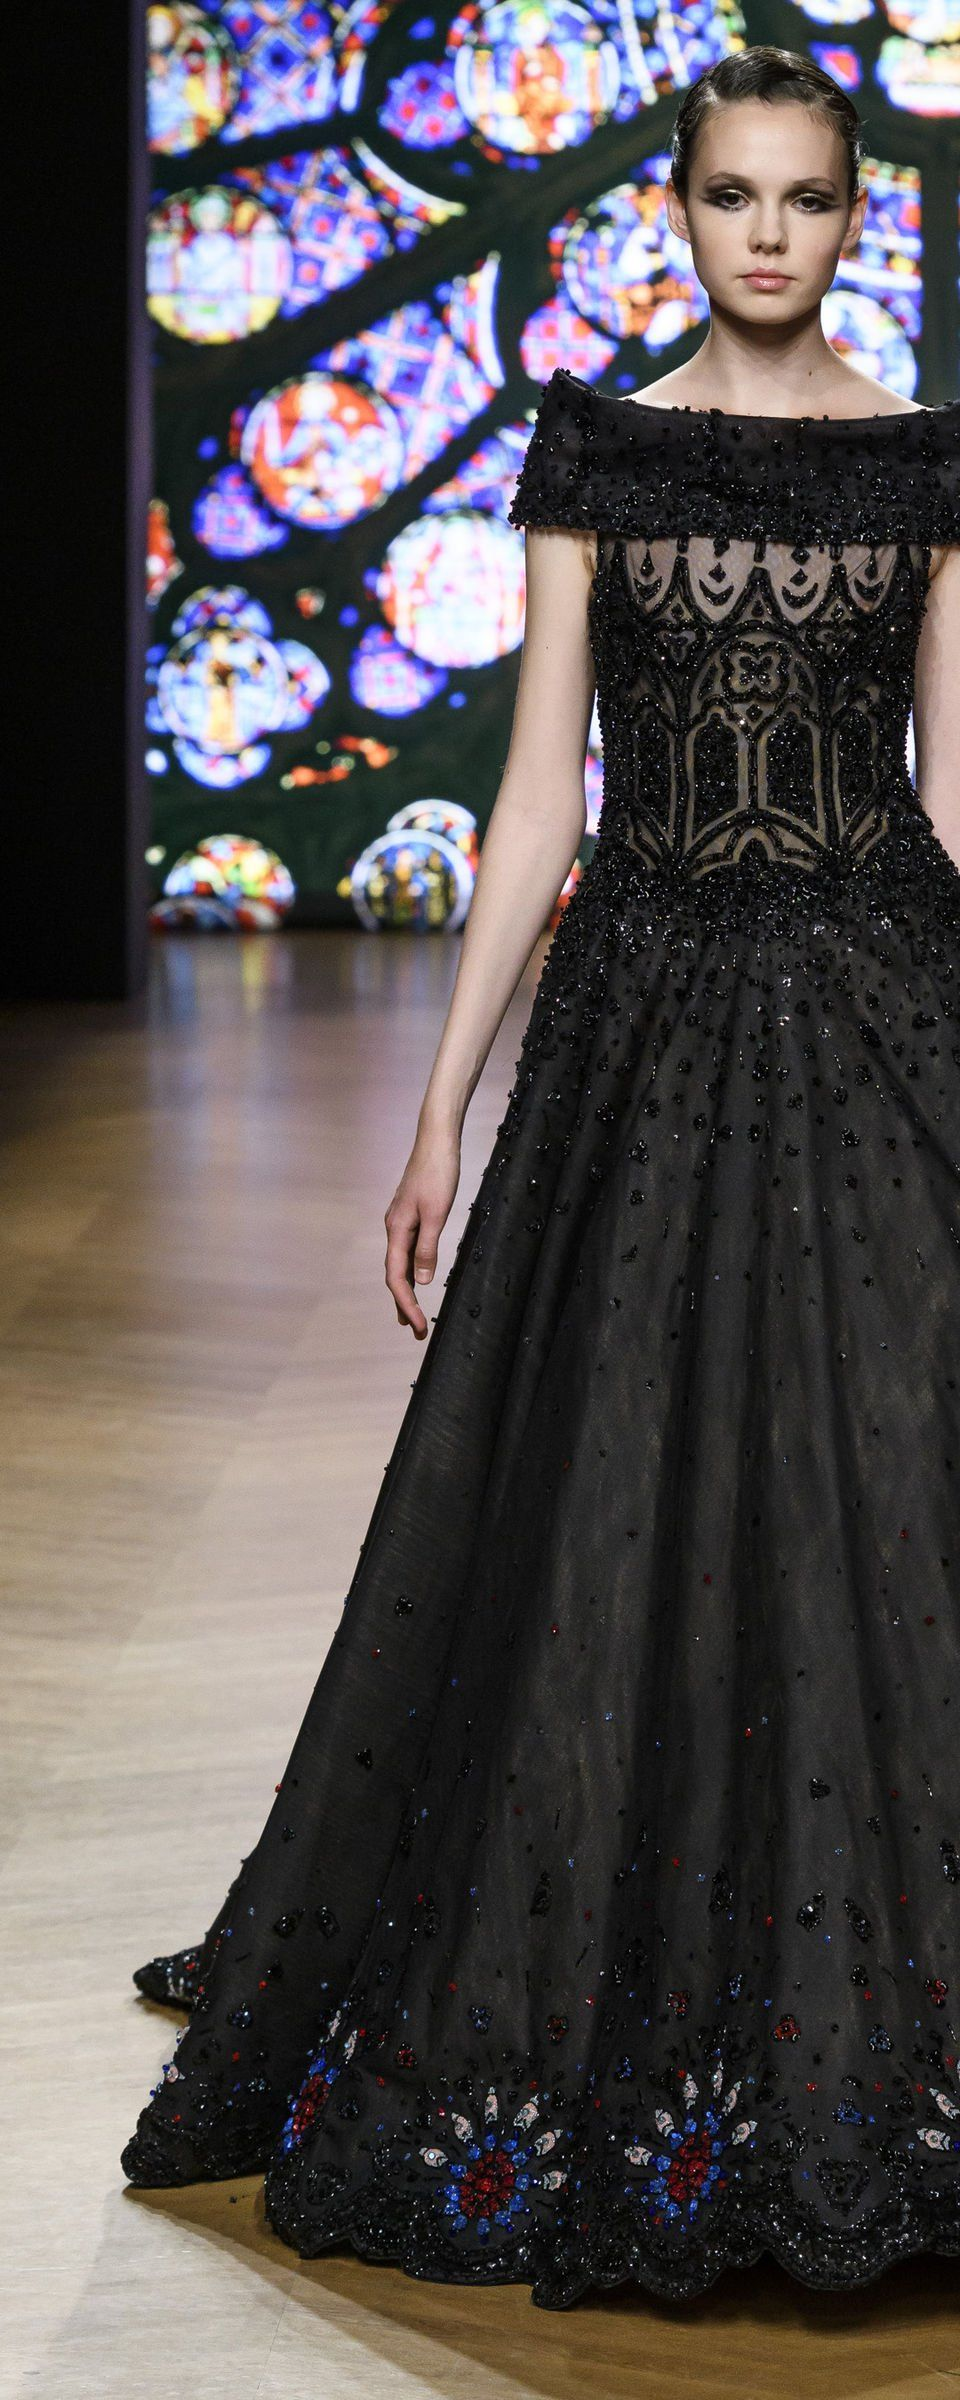 Lace dress bell sleeves june 2019 Tony Ward Fallwinter   Couture  Gowns  Pinterest